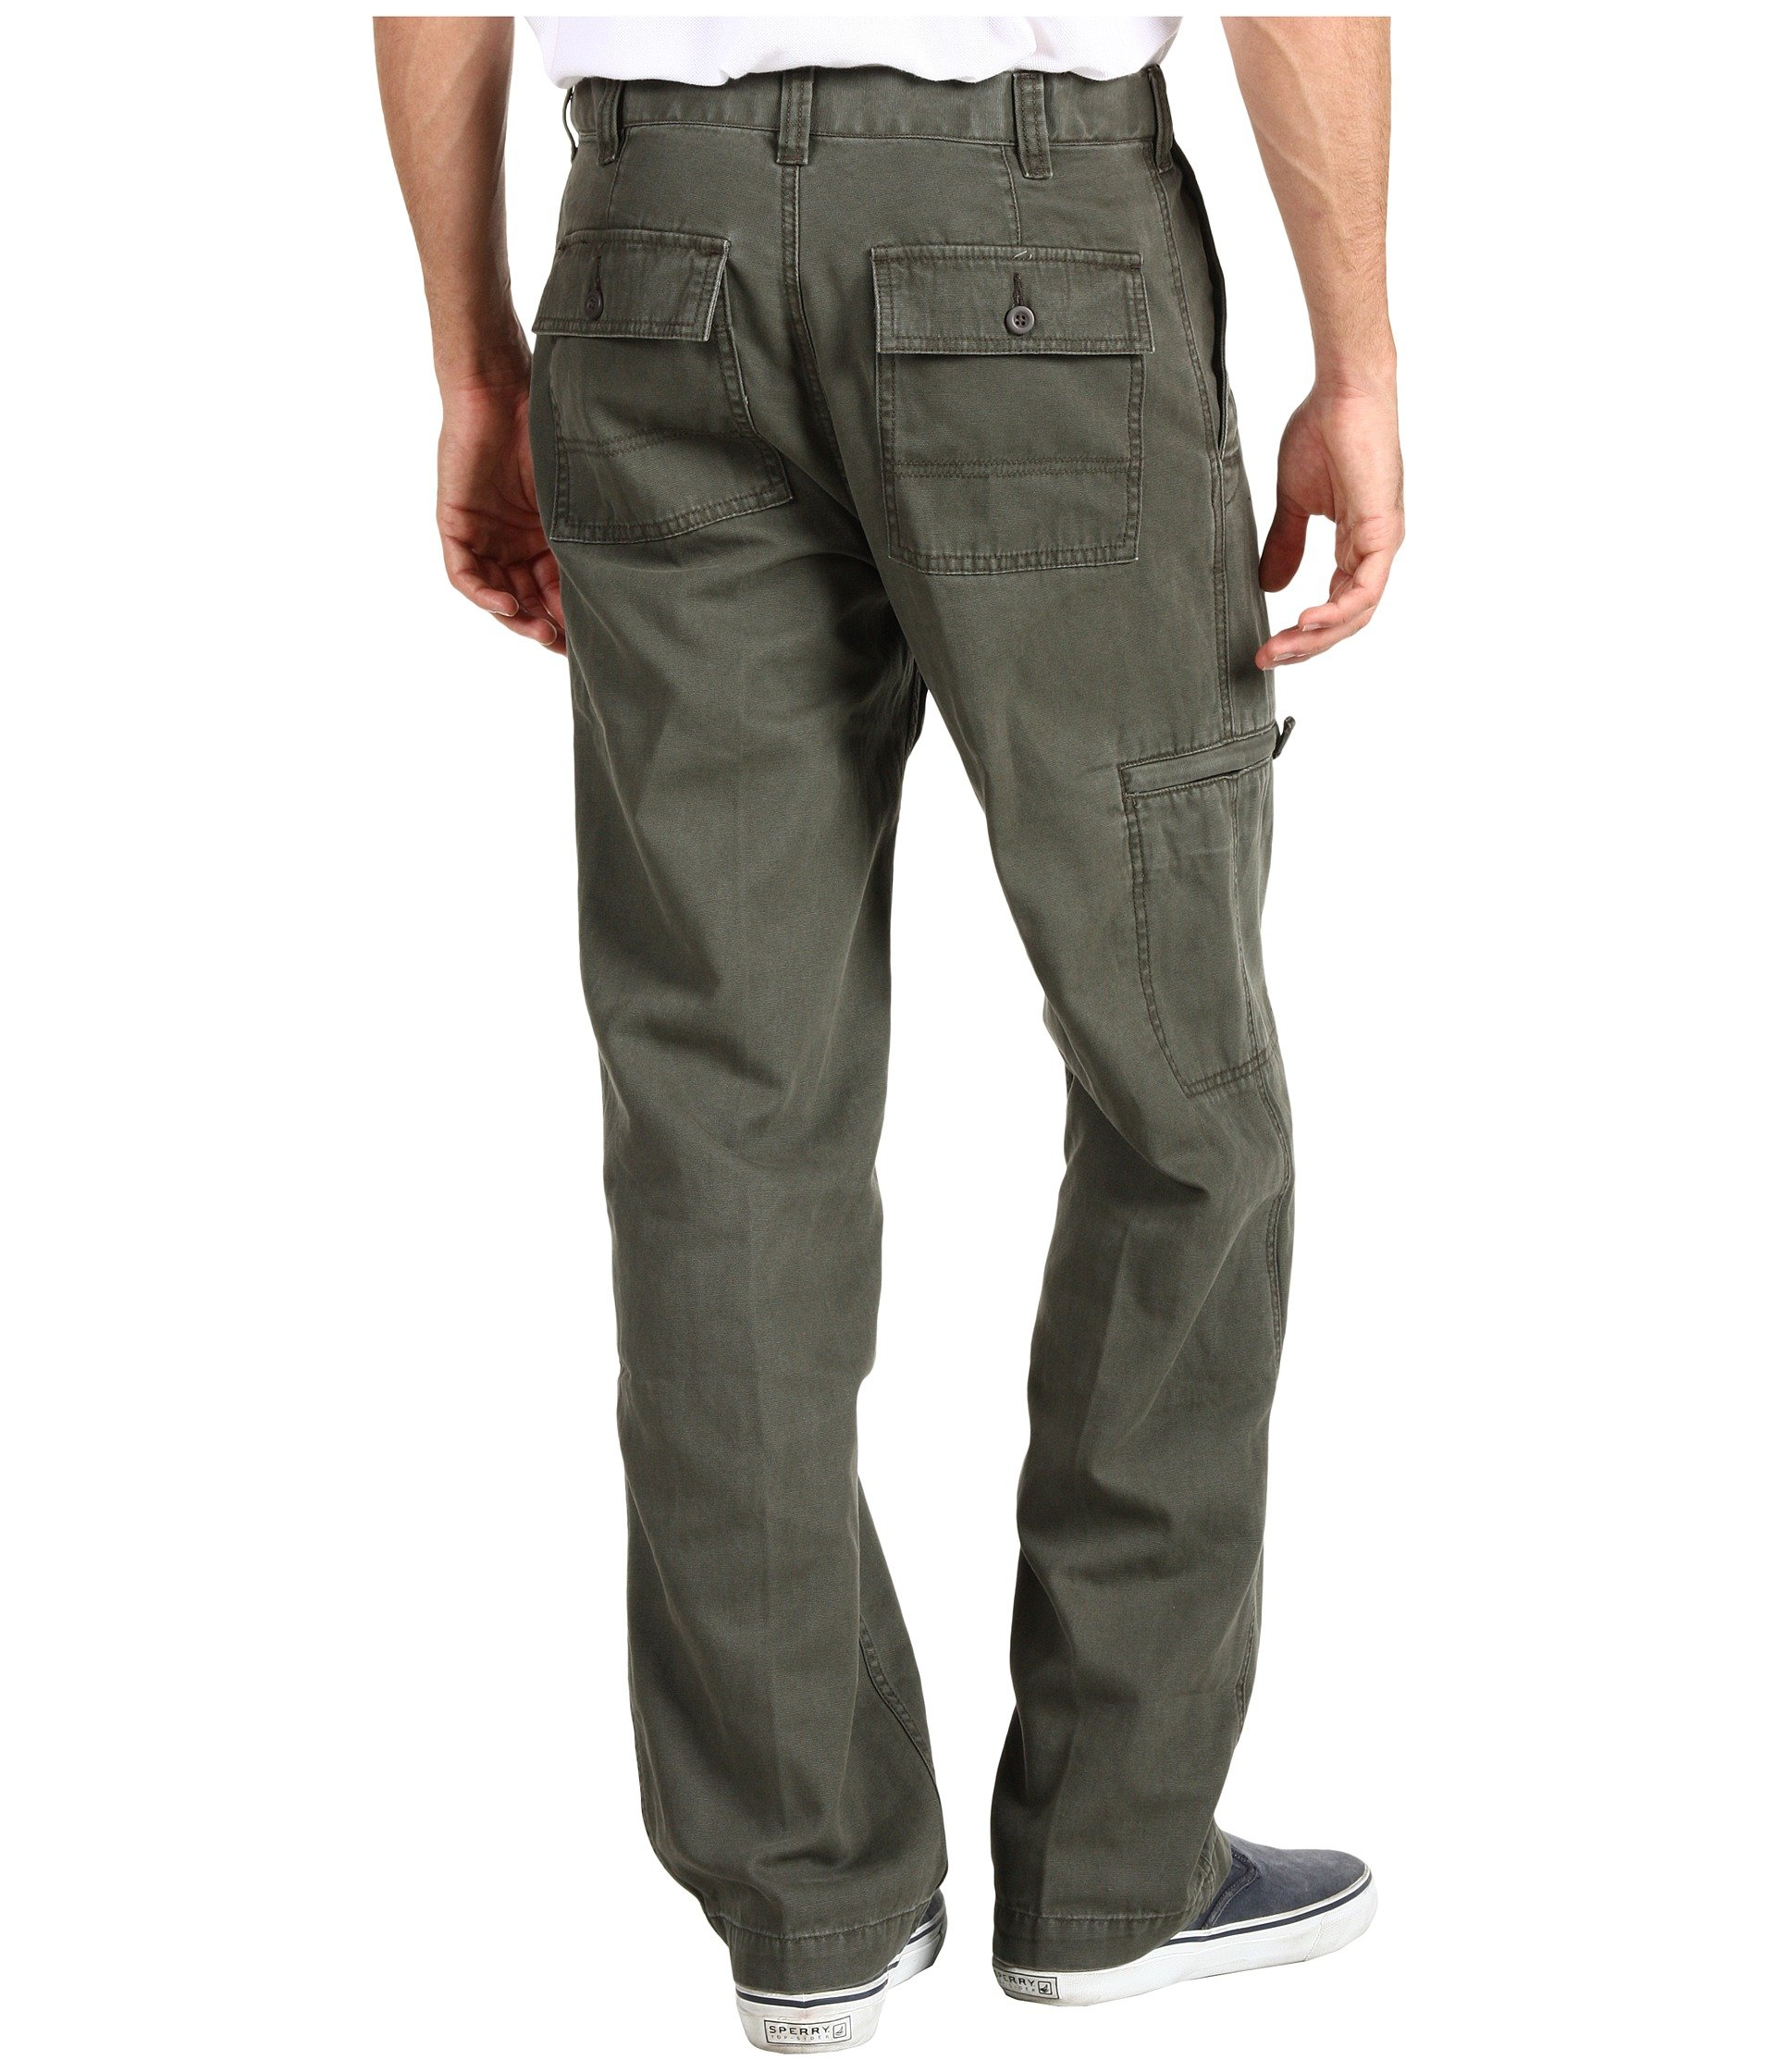 Green Classic rifle Fit Canvas Cargo D3 Comfort Dockers S6xwqBHan